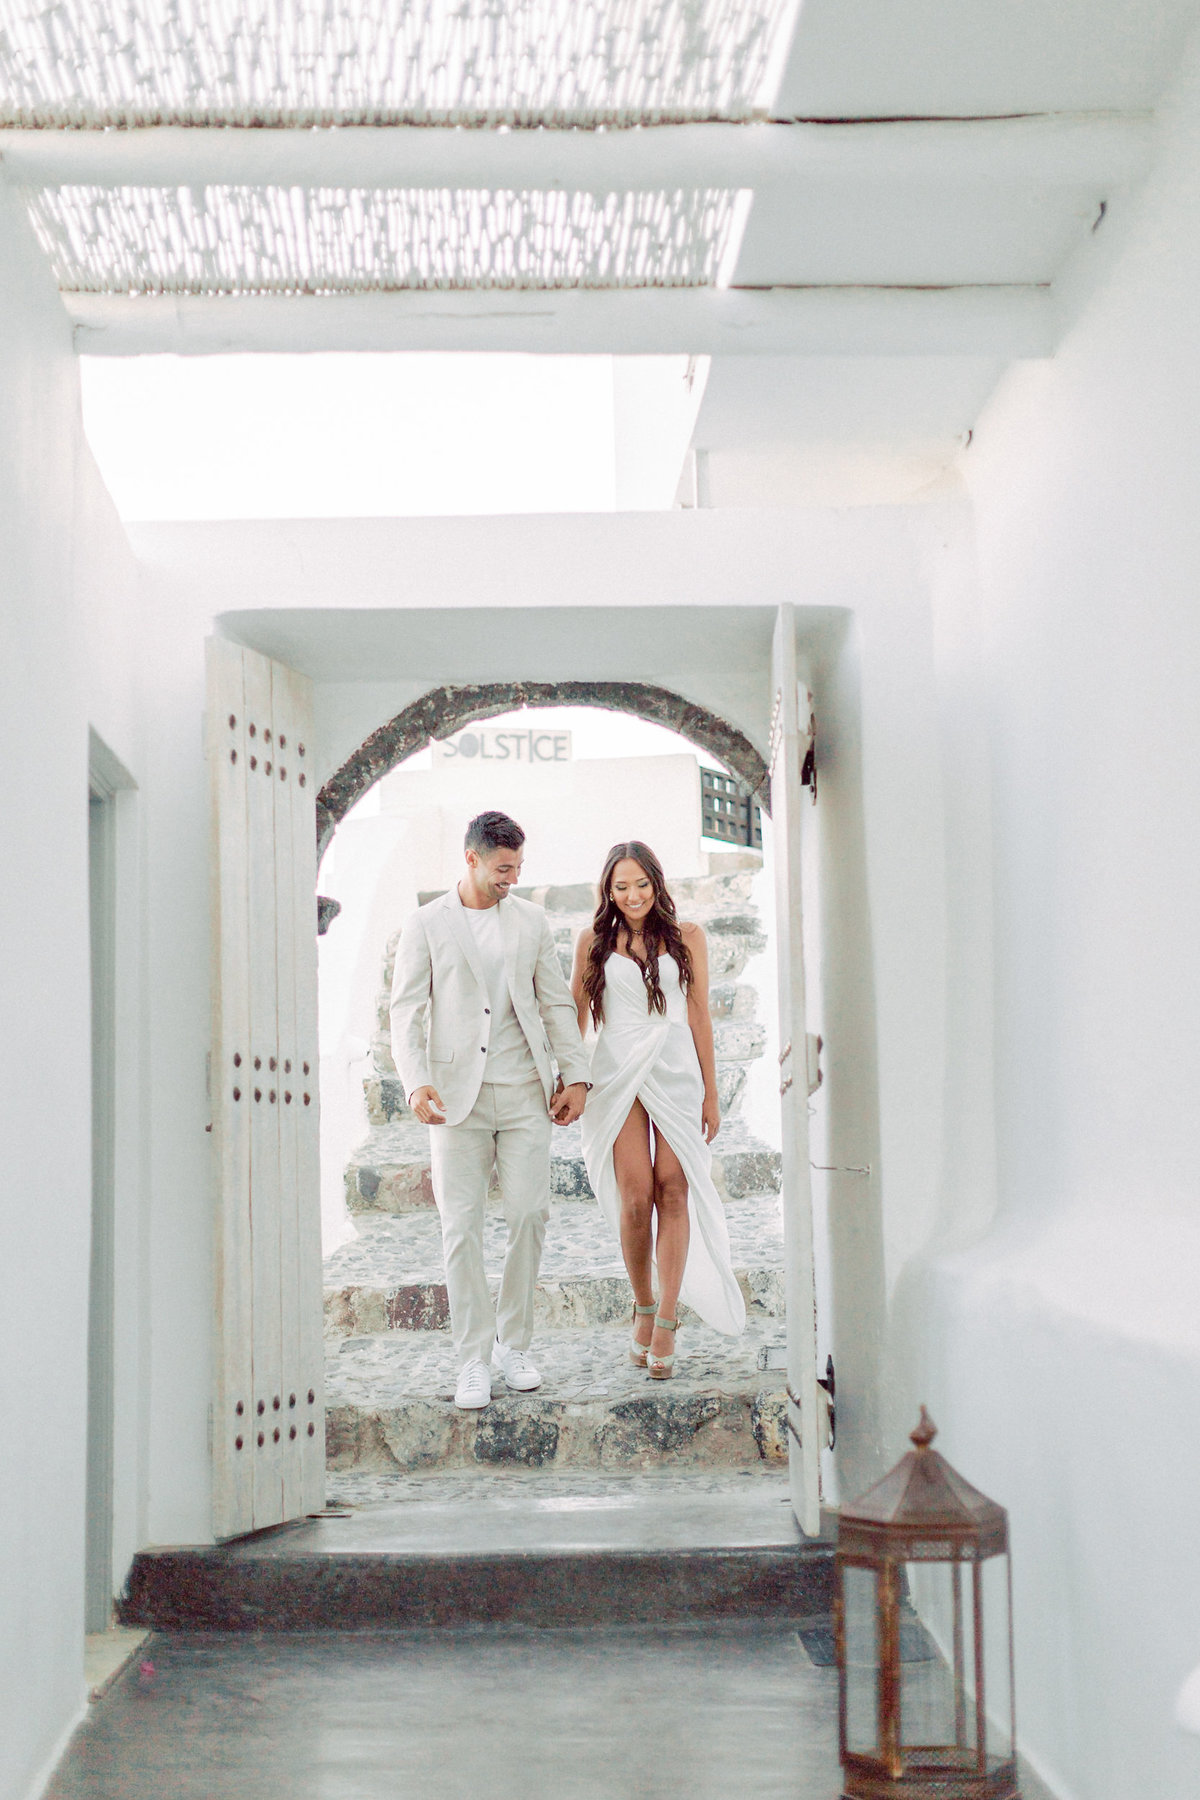 Justin_Taylor_Santorini_Wedding_Jana_Williams_Photography-2-3